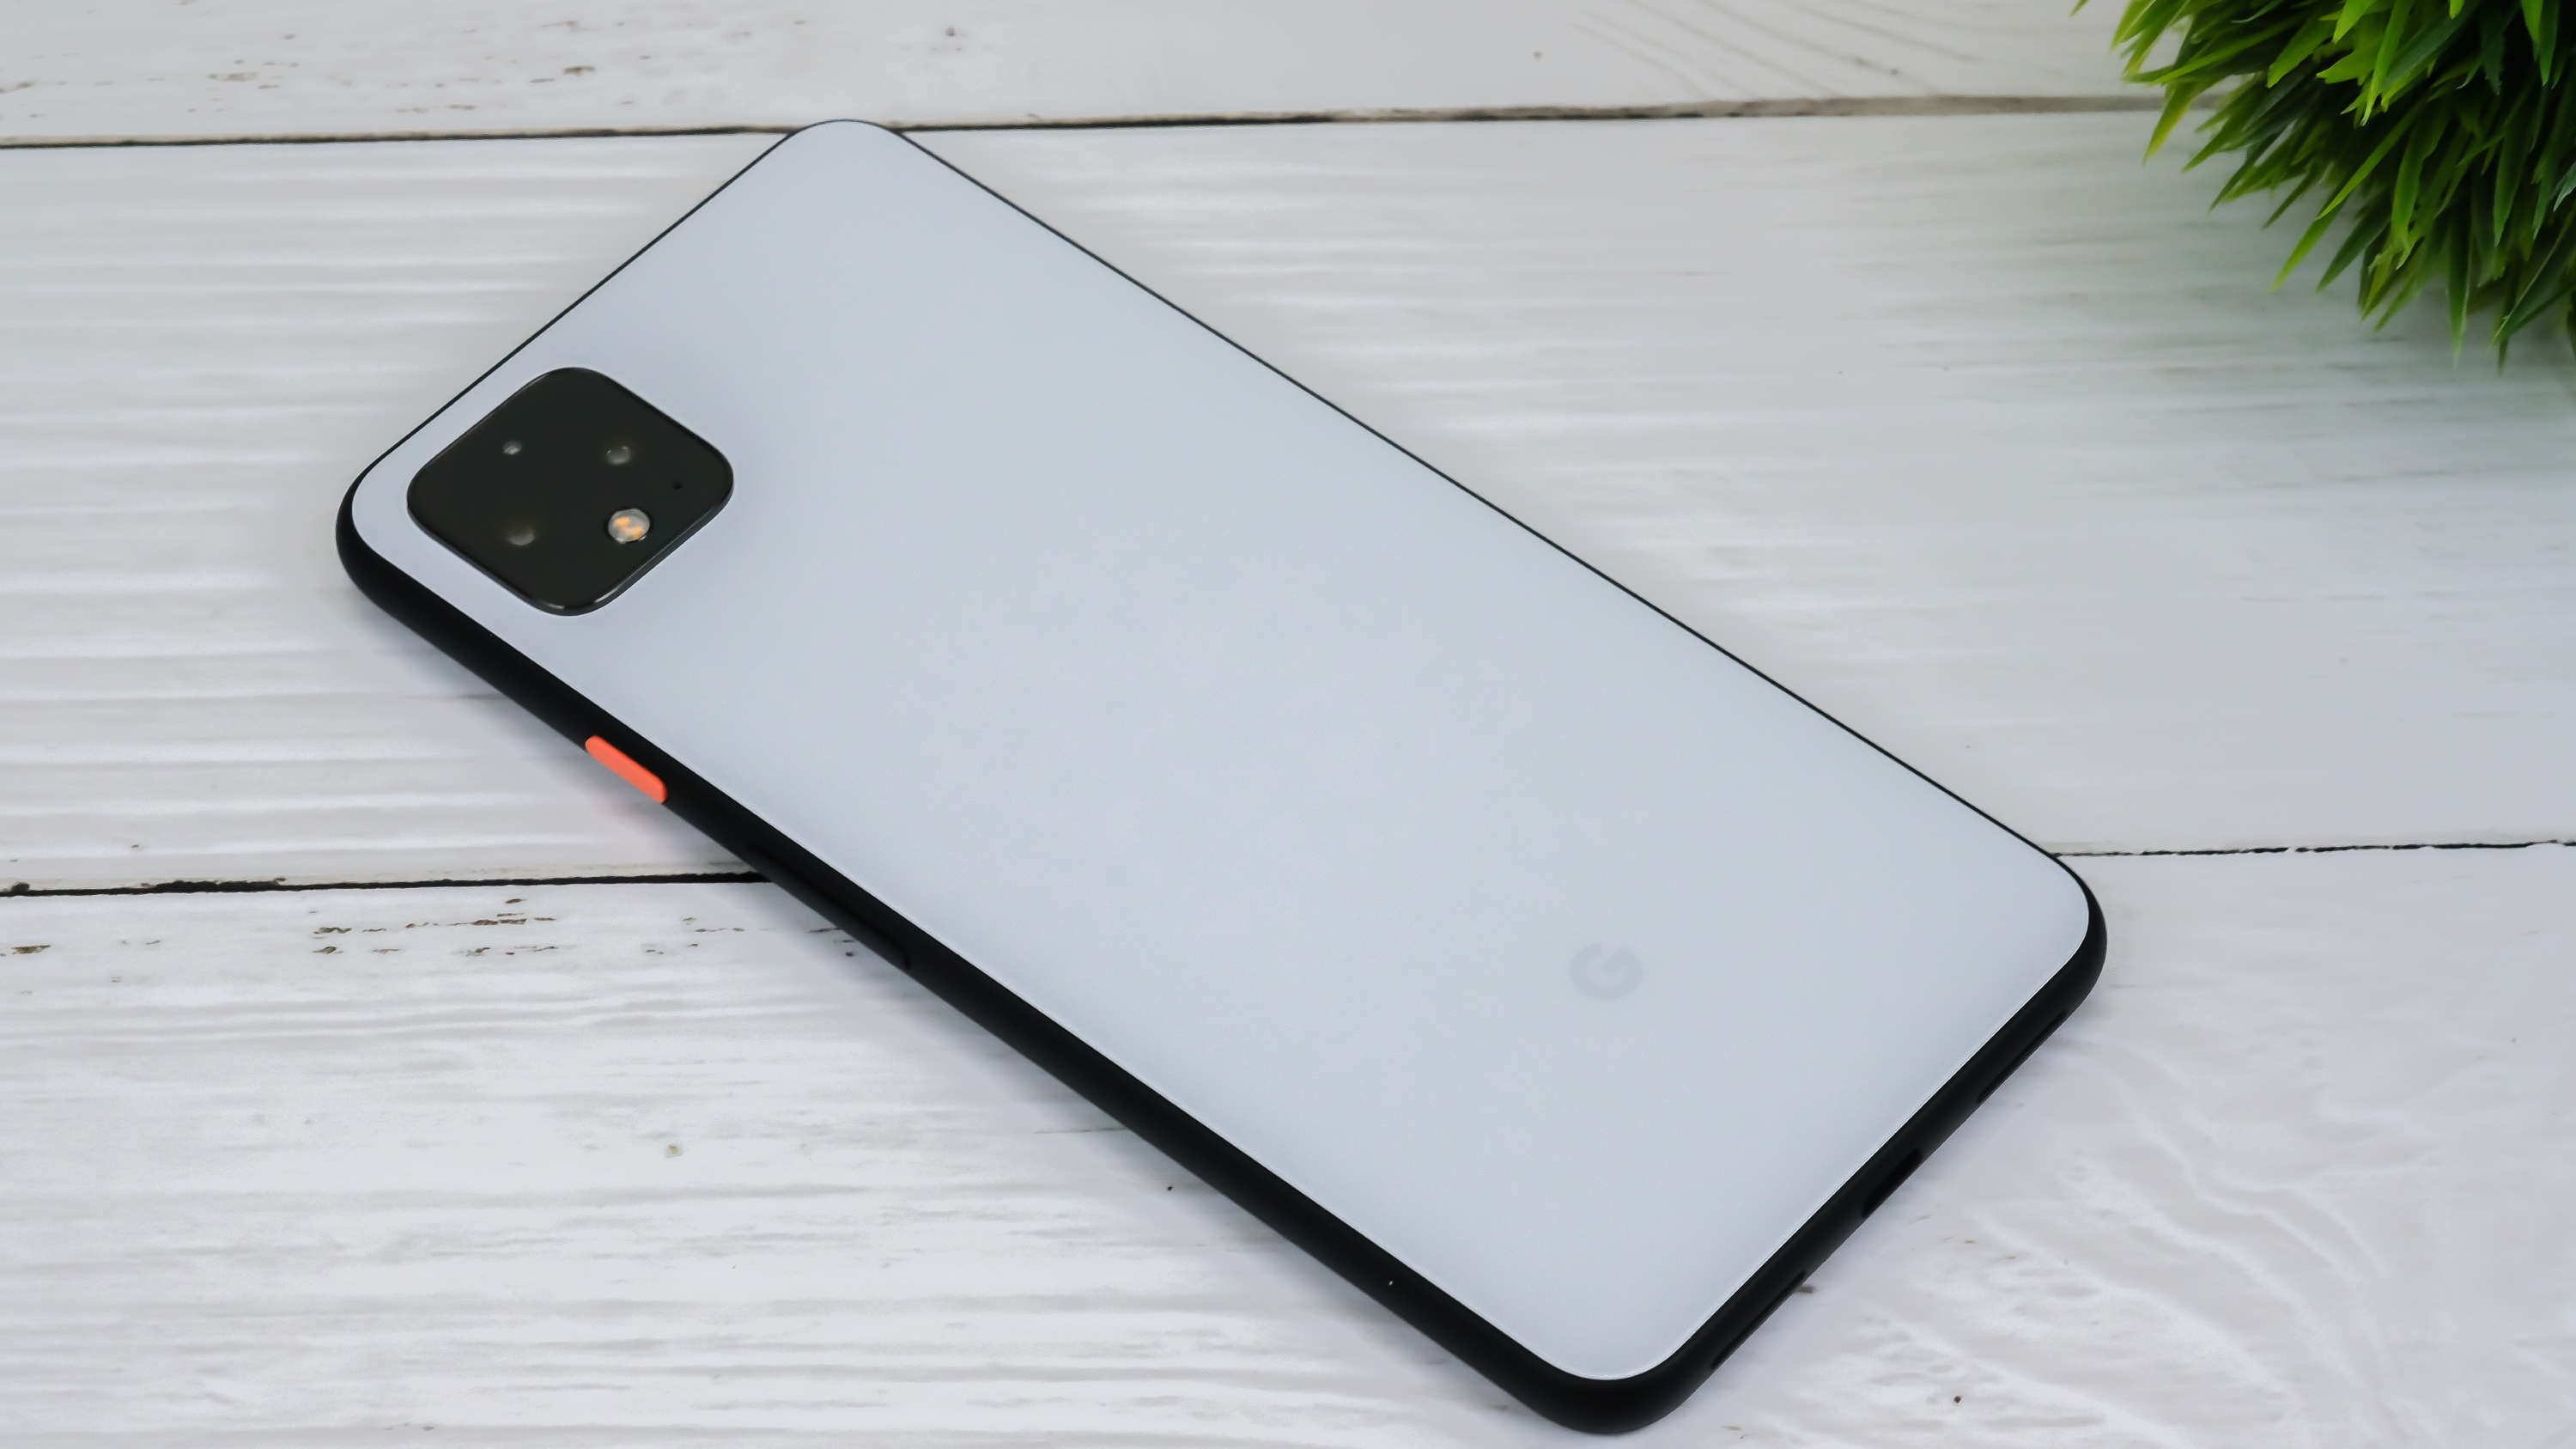 Best Google Pixel 4 Deals Prices Contracts And Sim Free Prices Compared In 2020 T3